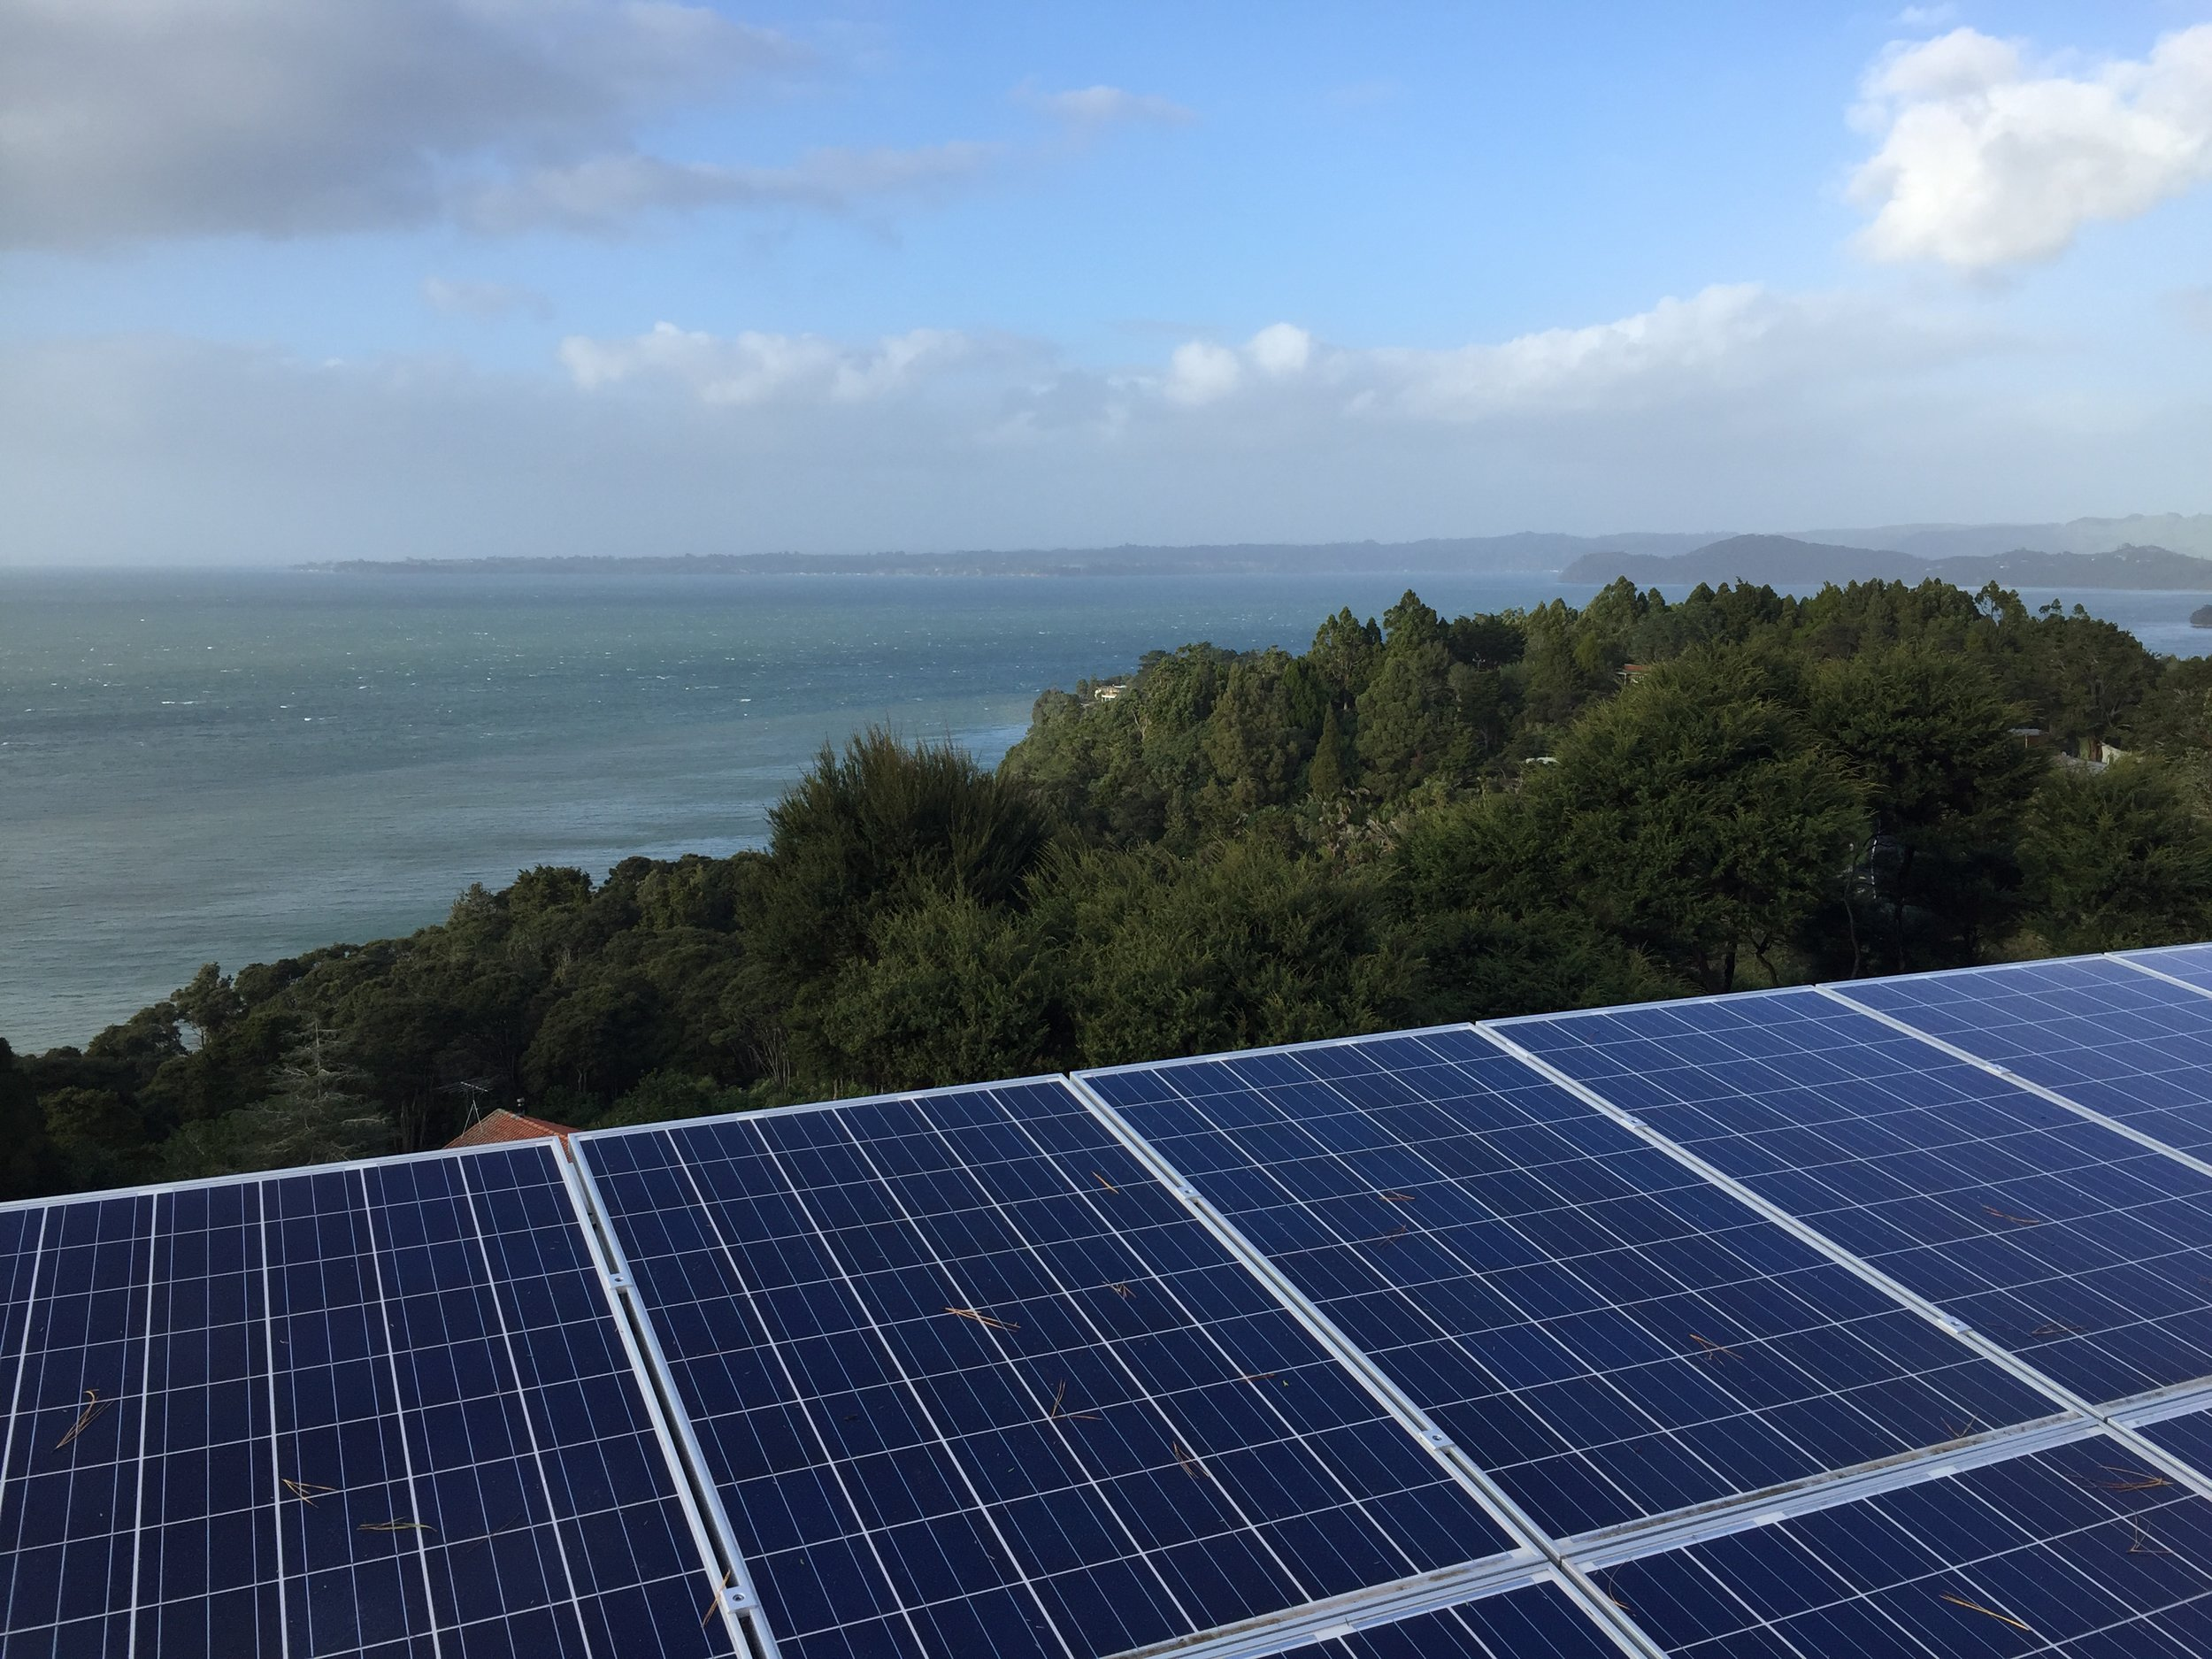 - Ensuring we have happy customers is part of what drives us - we promise to deliver an exceptional service to you and your home.The team at Renewable Installations have over 8 years of experience in the solar industry and specialise in installing systems of all sizes.